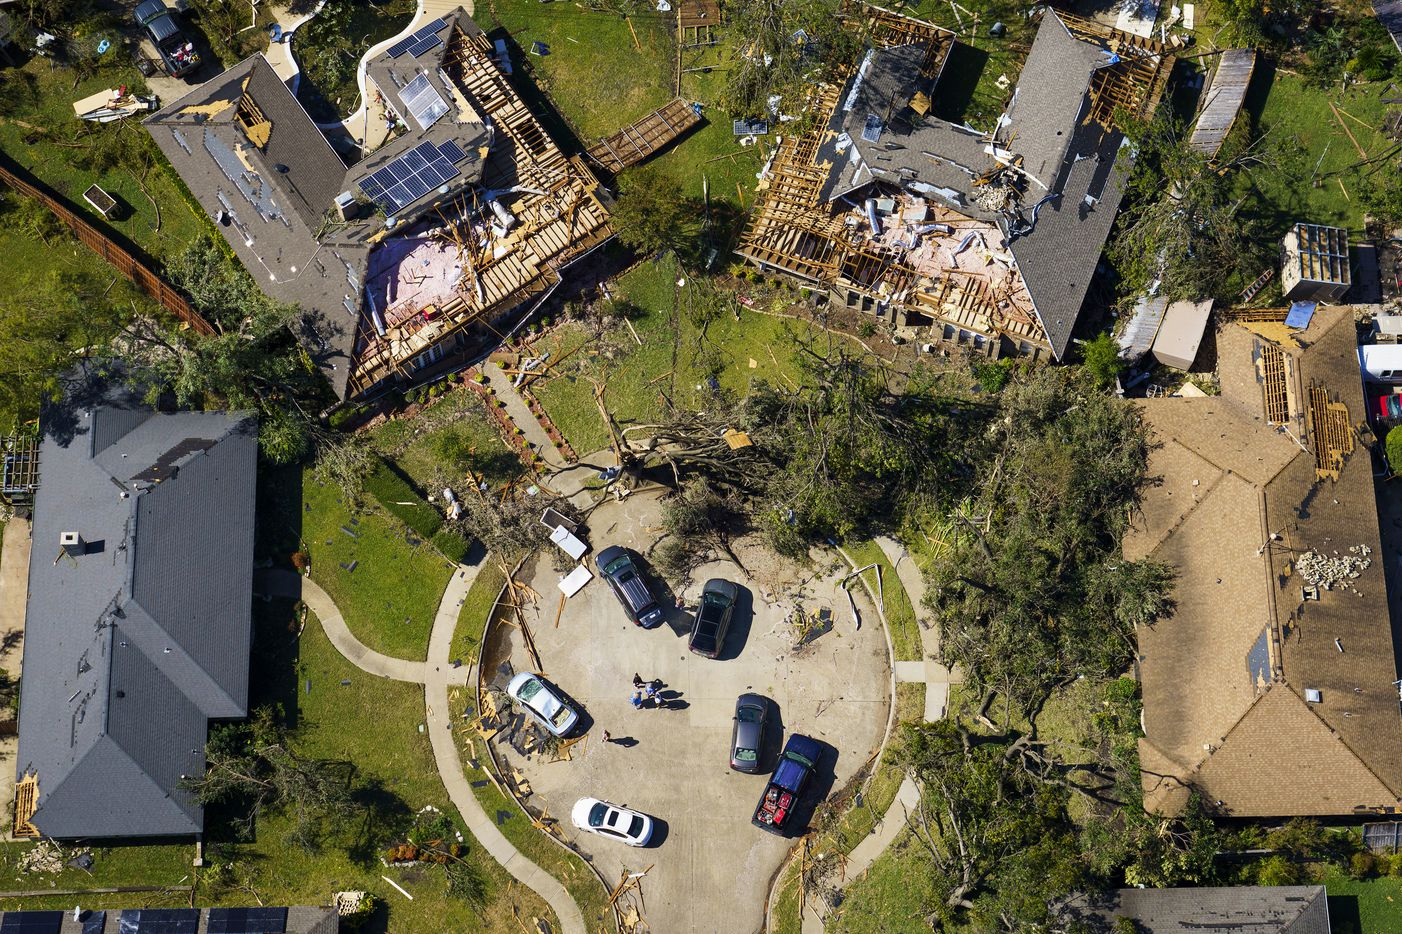 Damaged homes in a cul-de-sac on Stillmeadow Drive in Richardson on Monday, Oct. 21, 2019, in Richardson.